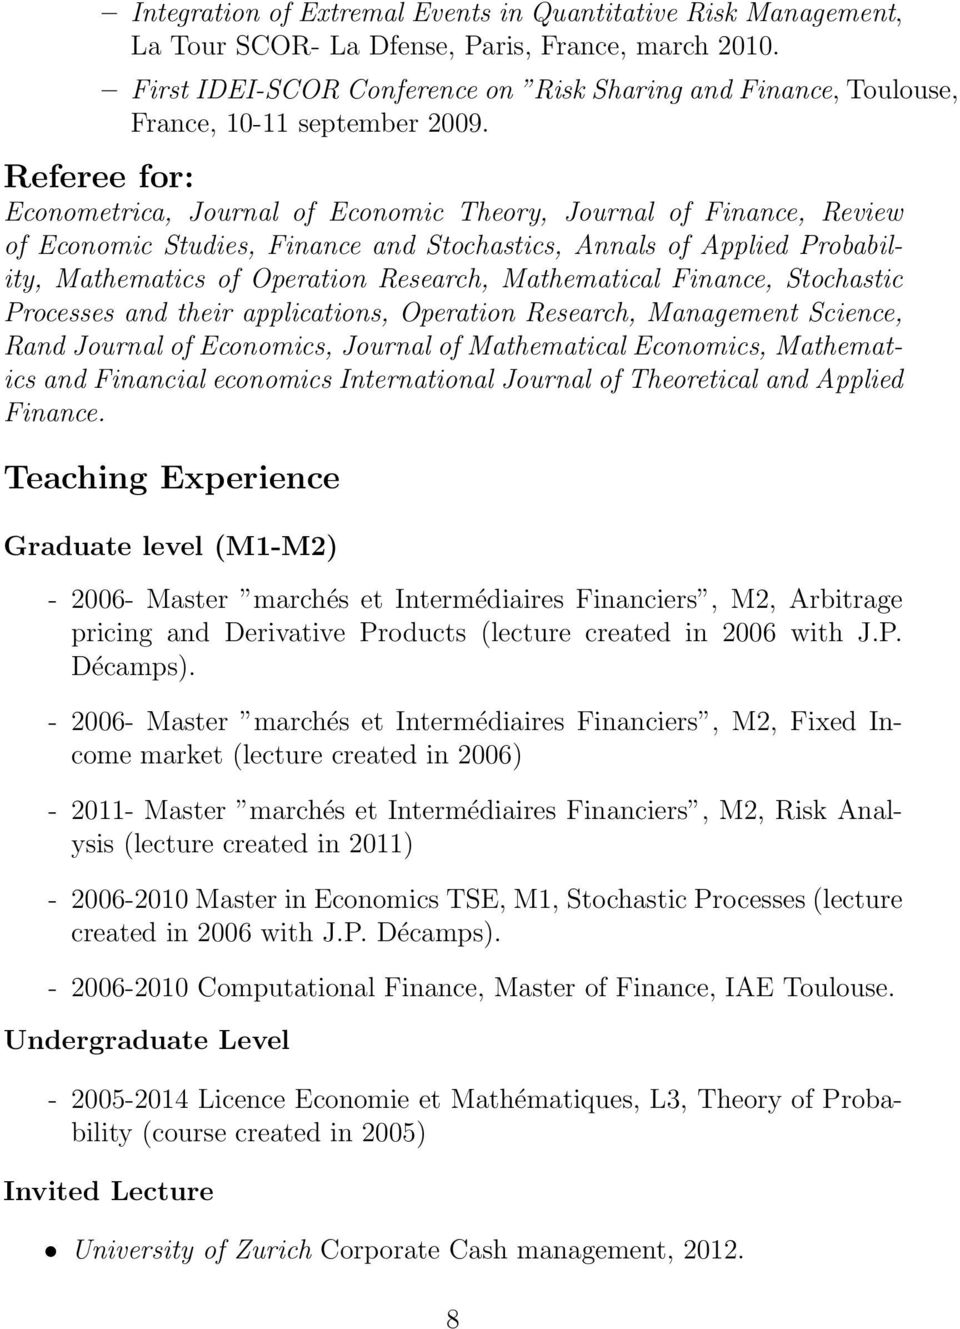 Referee for: Econometrica, Journal of Economic Theory, Journal of Finance, Review of Economic Studies, Finance and Stochastics, Annals of Applied Probability, Mathematics of Operation Research,